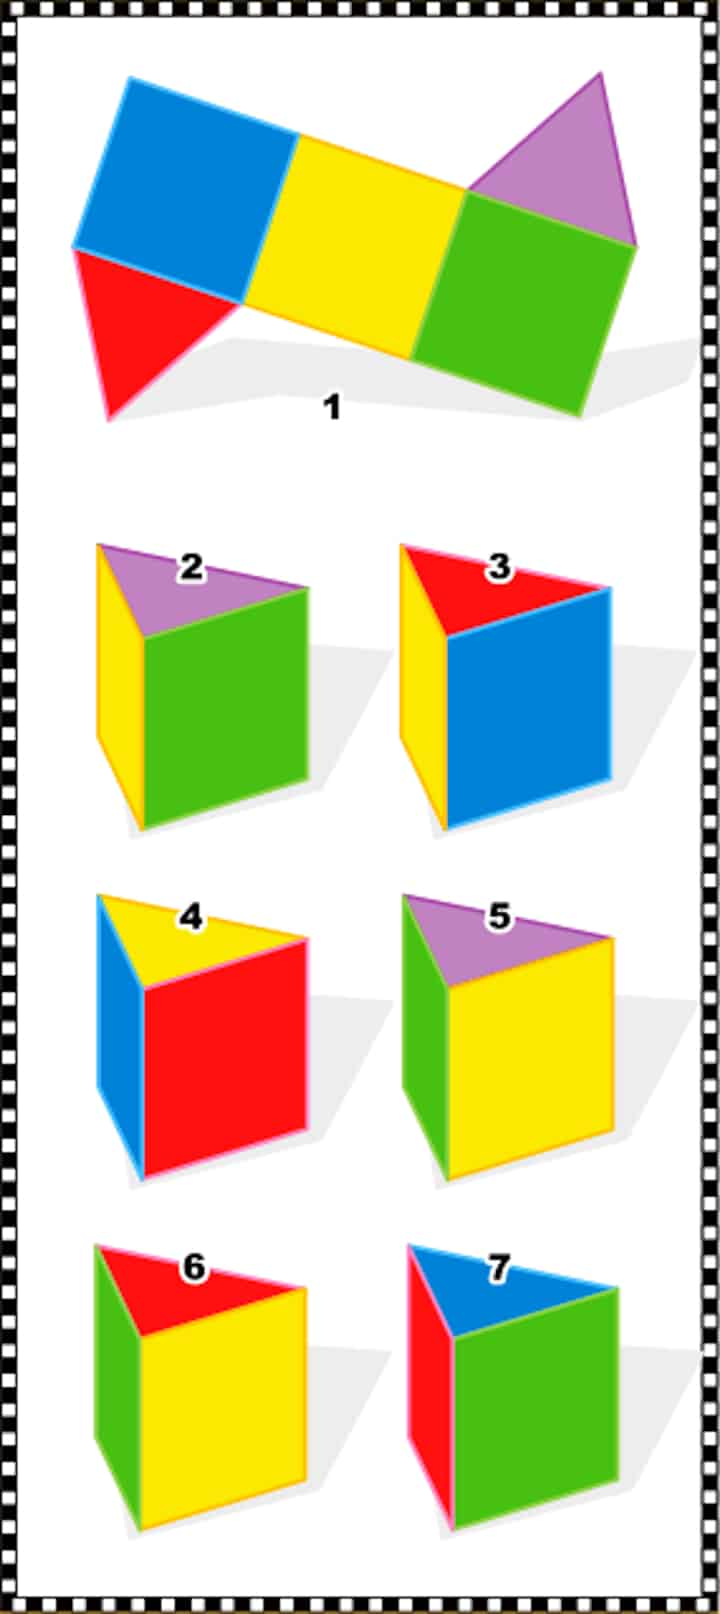 3D prism test - visual spatial intelligence example